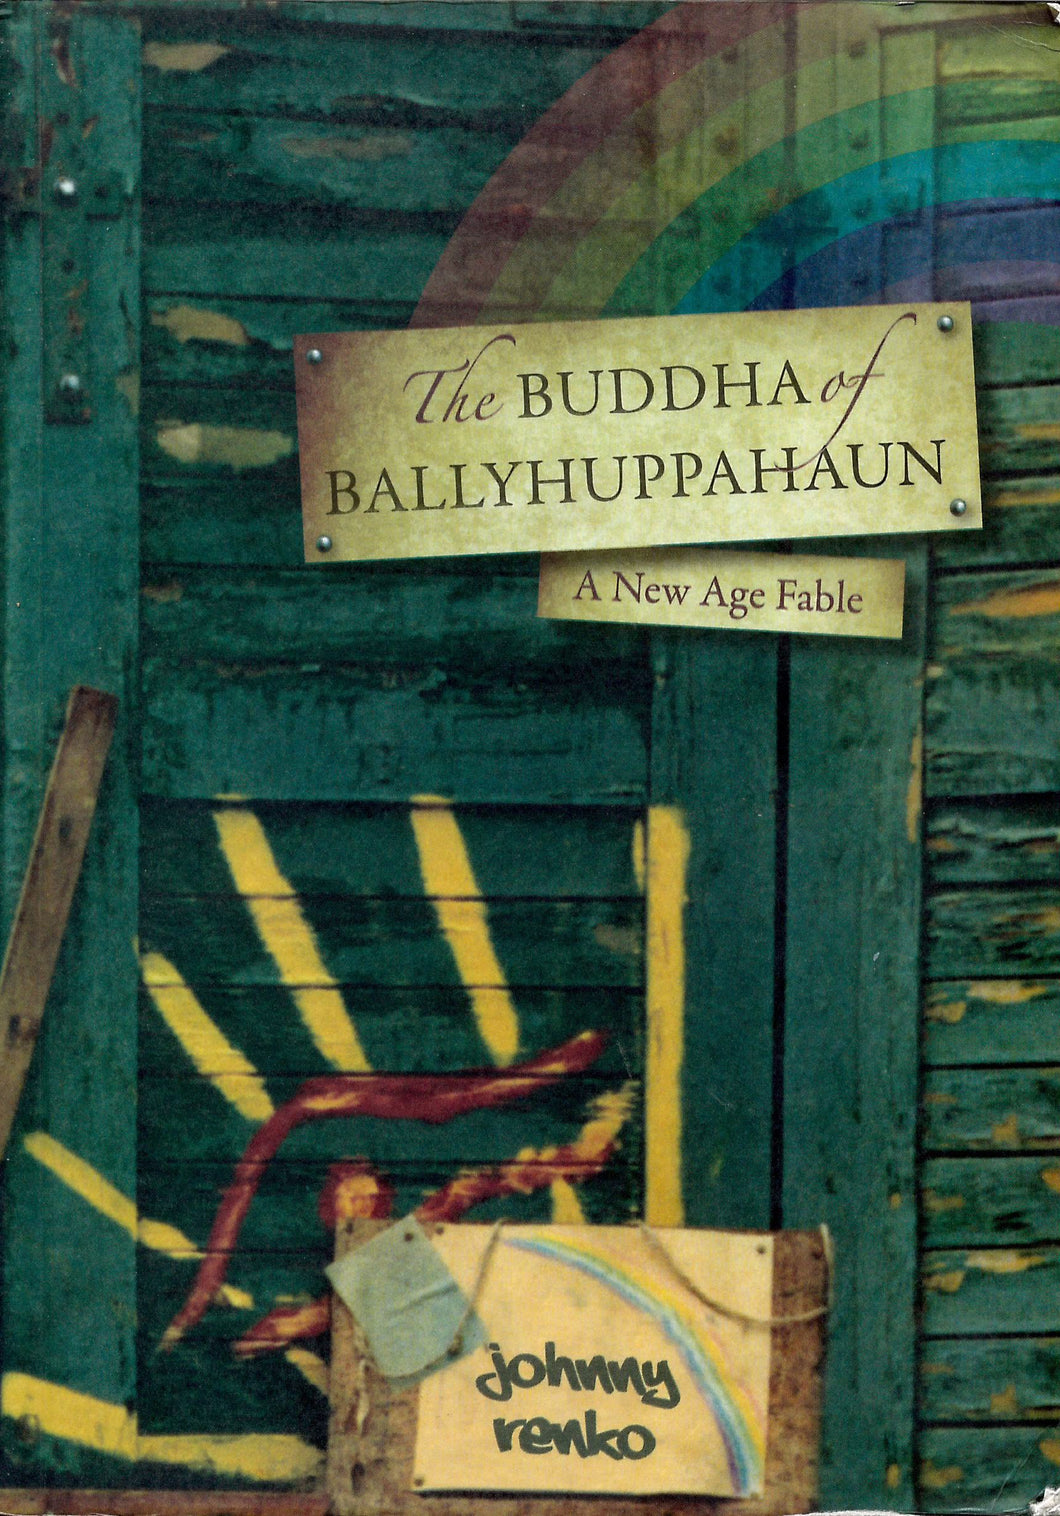 The Buddha of Ballyhuppahaun: A New Age Fable